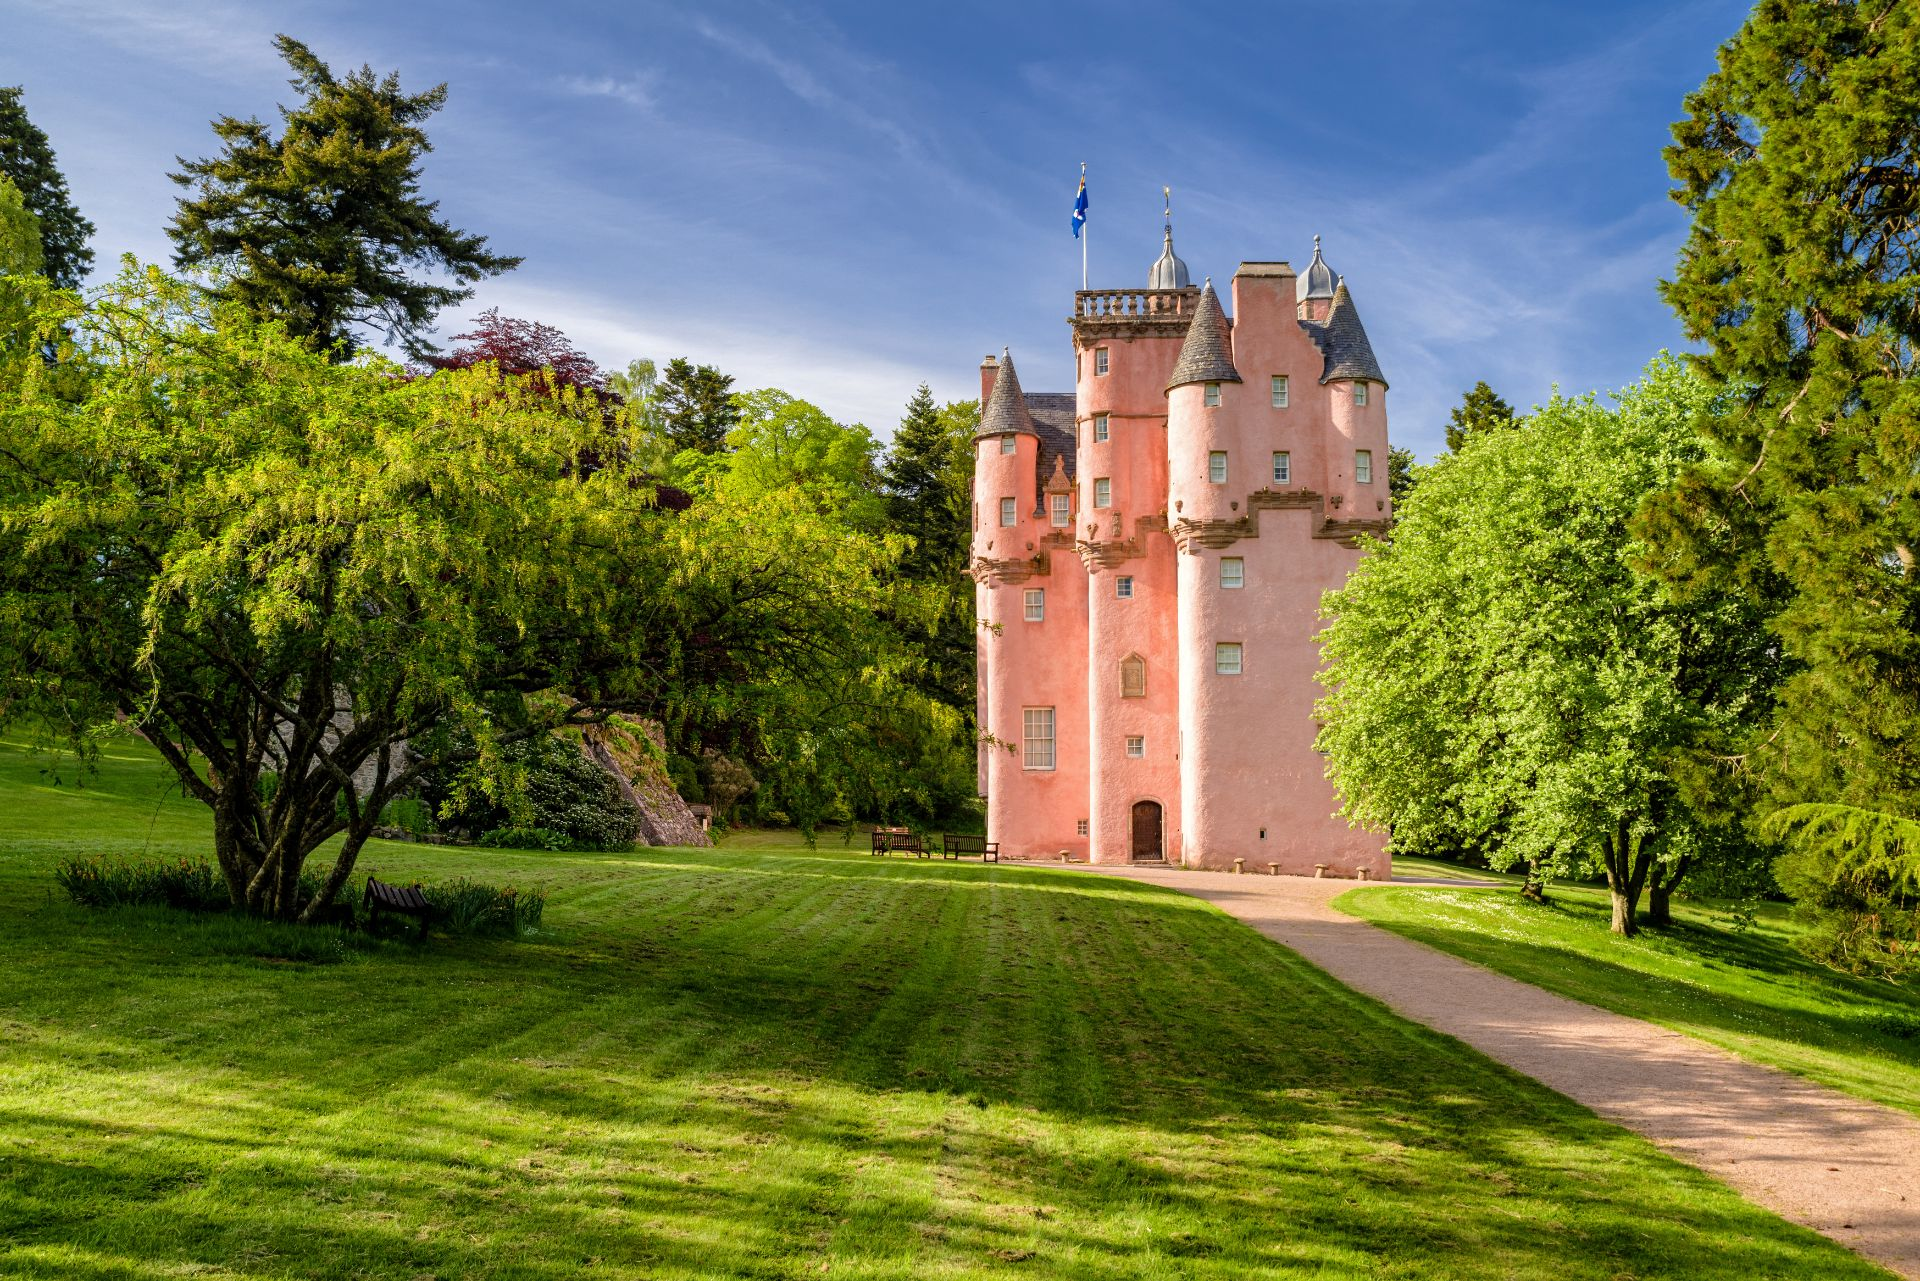 famous-pink-castle-surrounded-by-a-green-park-craigievar-castle-scenic-drives-in-scotland